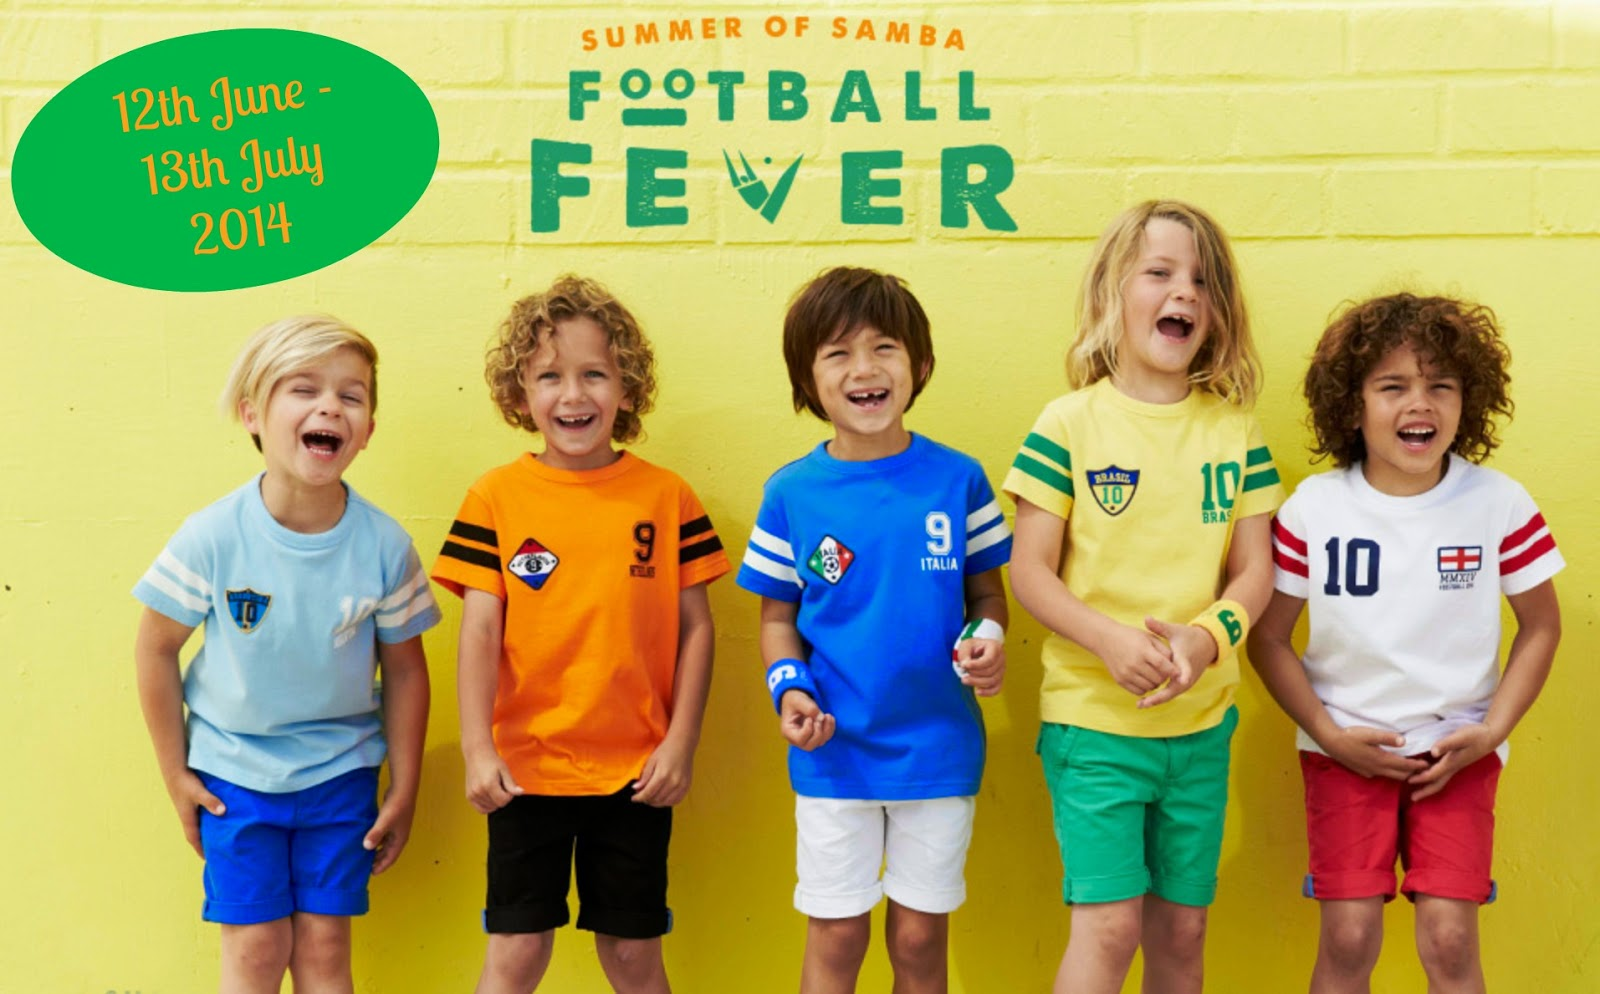 World Cup t-shirts for little football fans | Fashion | world cup | football tees | t-shirts | football t-shirts | boys fashion | world cup rail | england | tees | boys fashion fr football fans | football slogan tees | high street fashion | next | matalan | george | H&M | boys clothes | MamasVIB